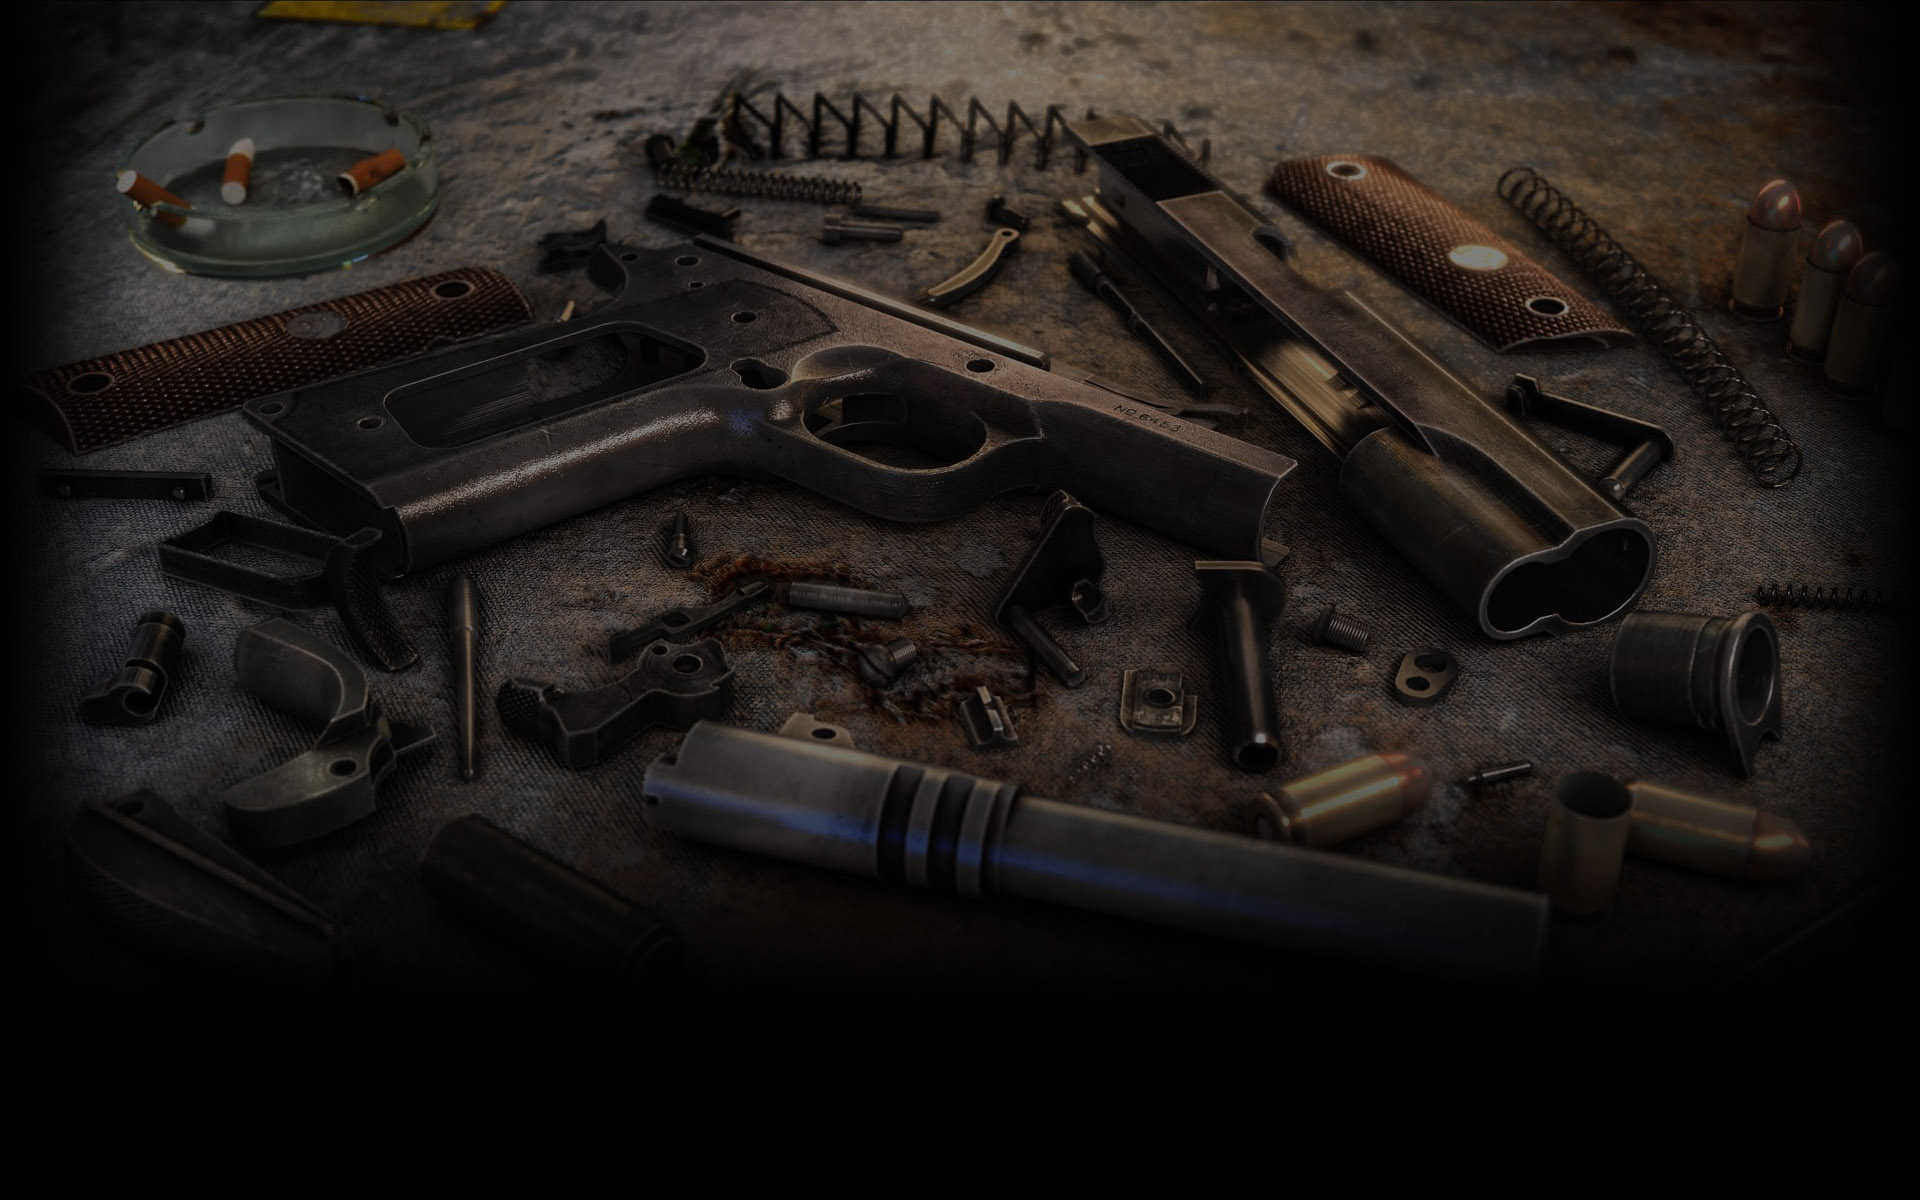 Steam Community Market Listings for 262410 Colt M1911 background 1920x1200